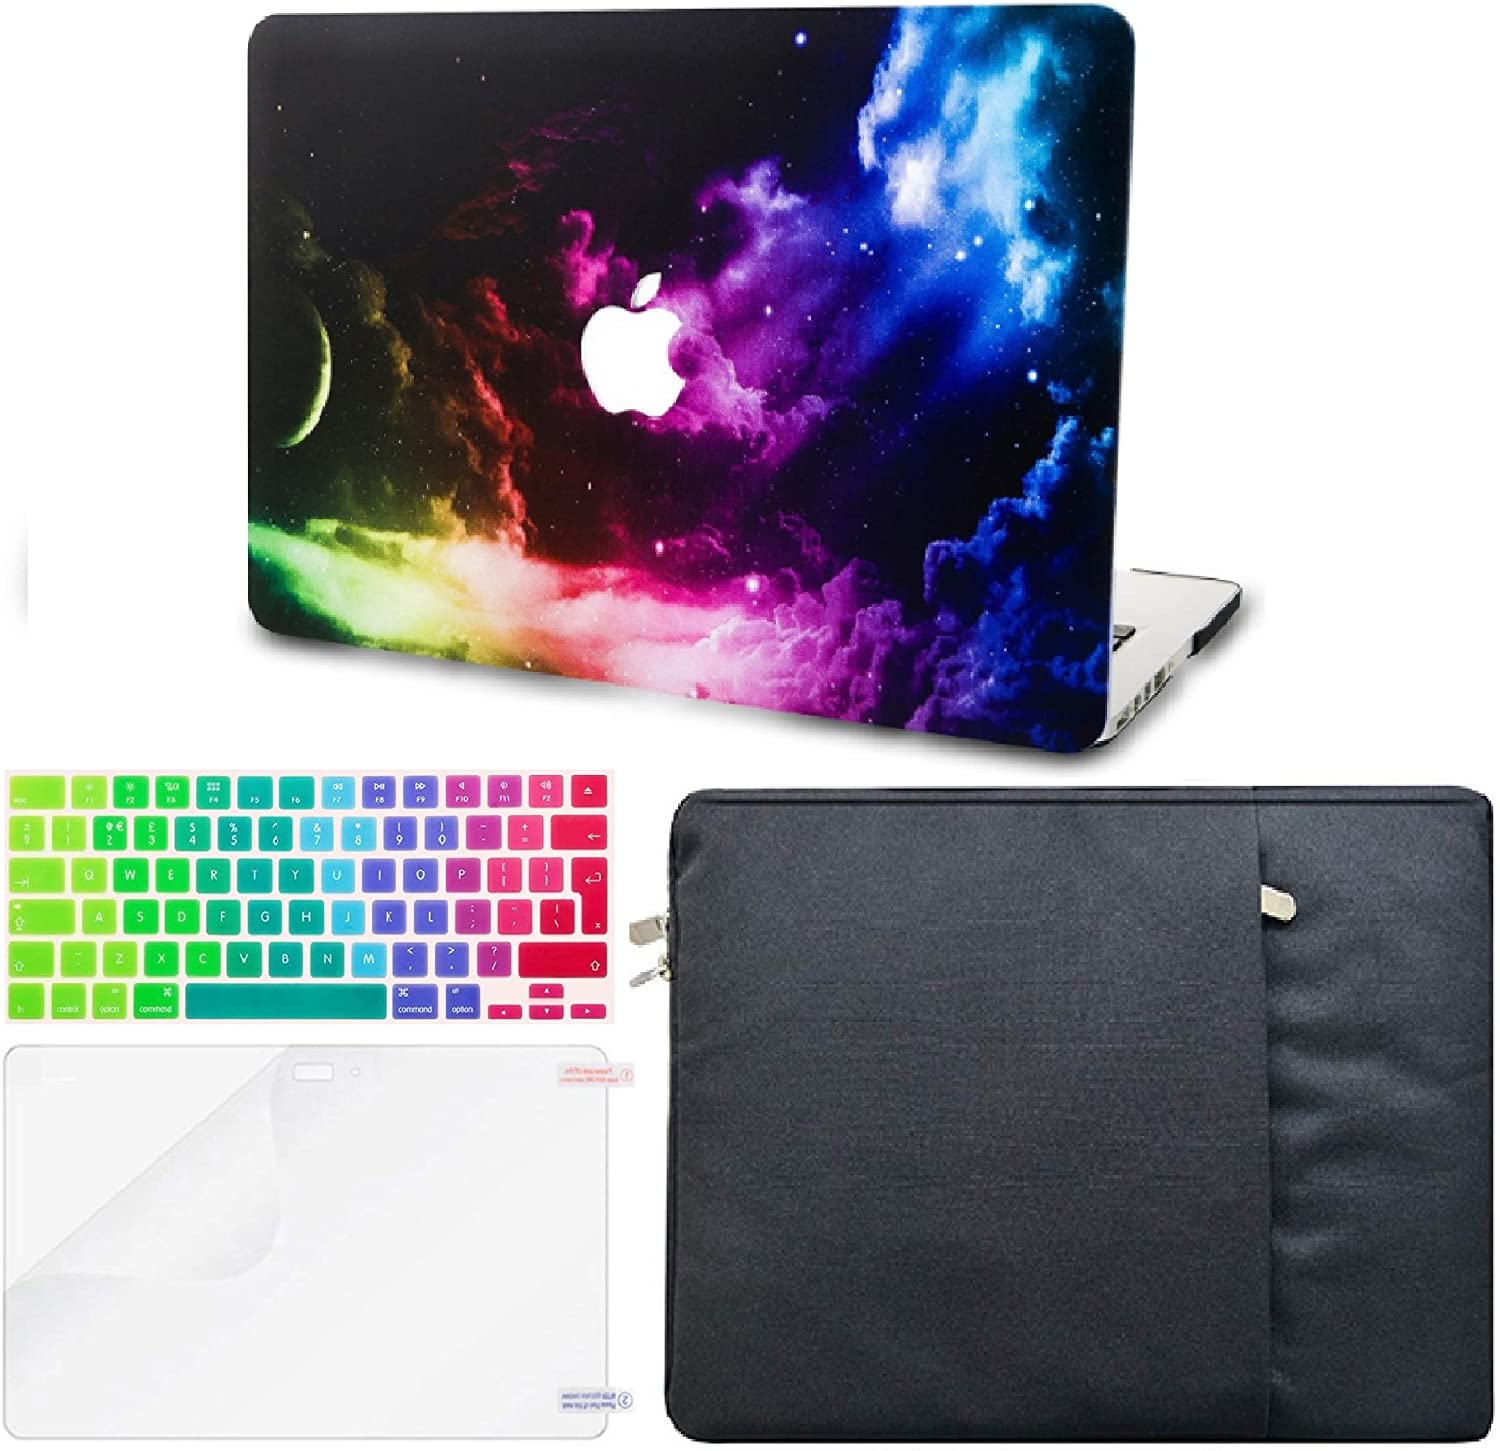 "KECC Laptop Case for MacBook Pro 13"" (2020, Touch Bar) w/Keyboard Cover + Sleeve + Screen Protector (4 in 1 Bundle) Hard Shell A2289/A2251 (Colorful Space)"